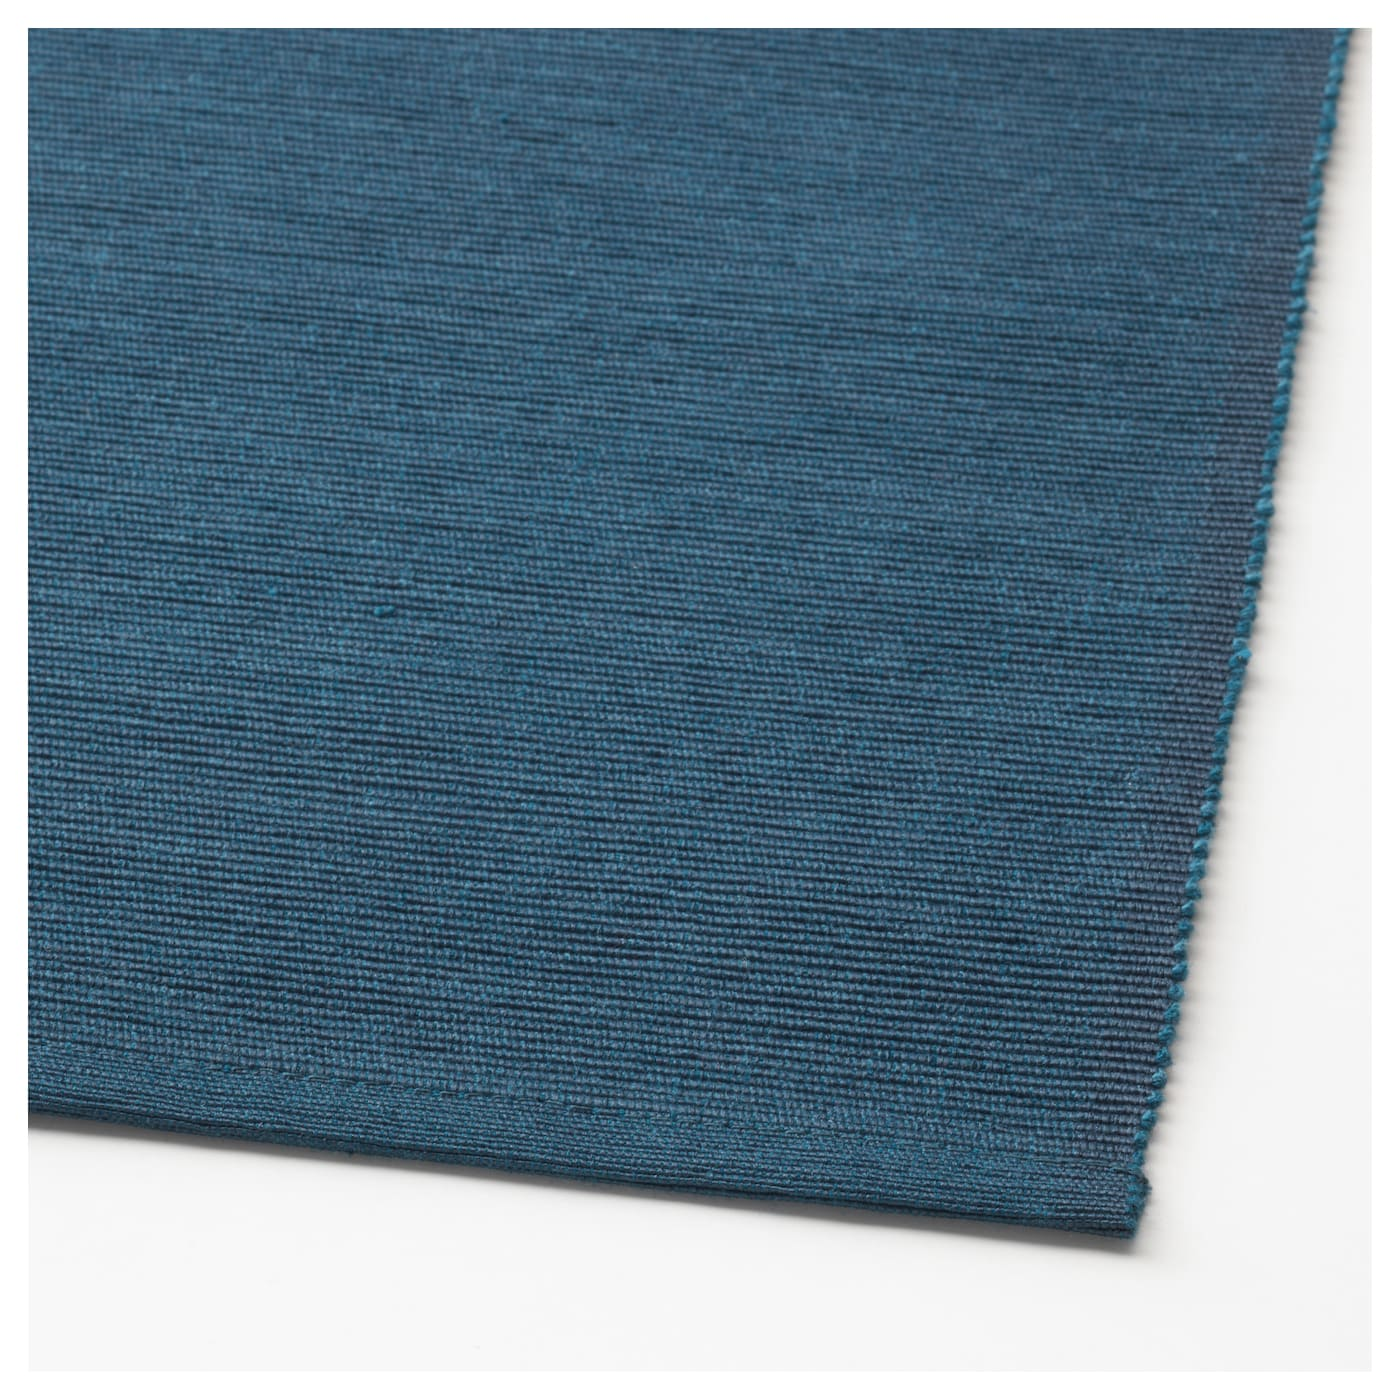 IKEA MÄRIT table-runner Colours are retained wash after wash thanks to the yarn-dyed cotton.